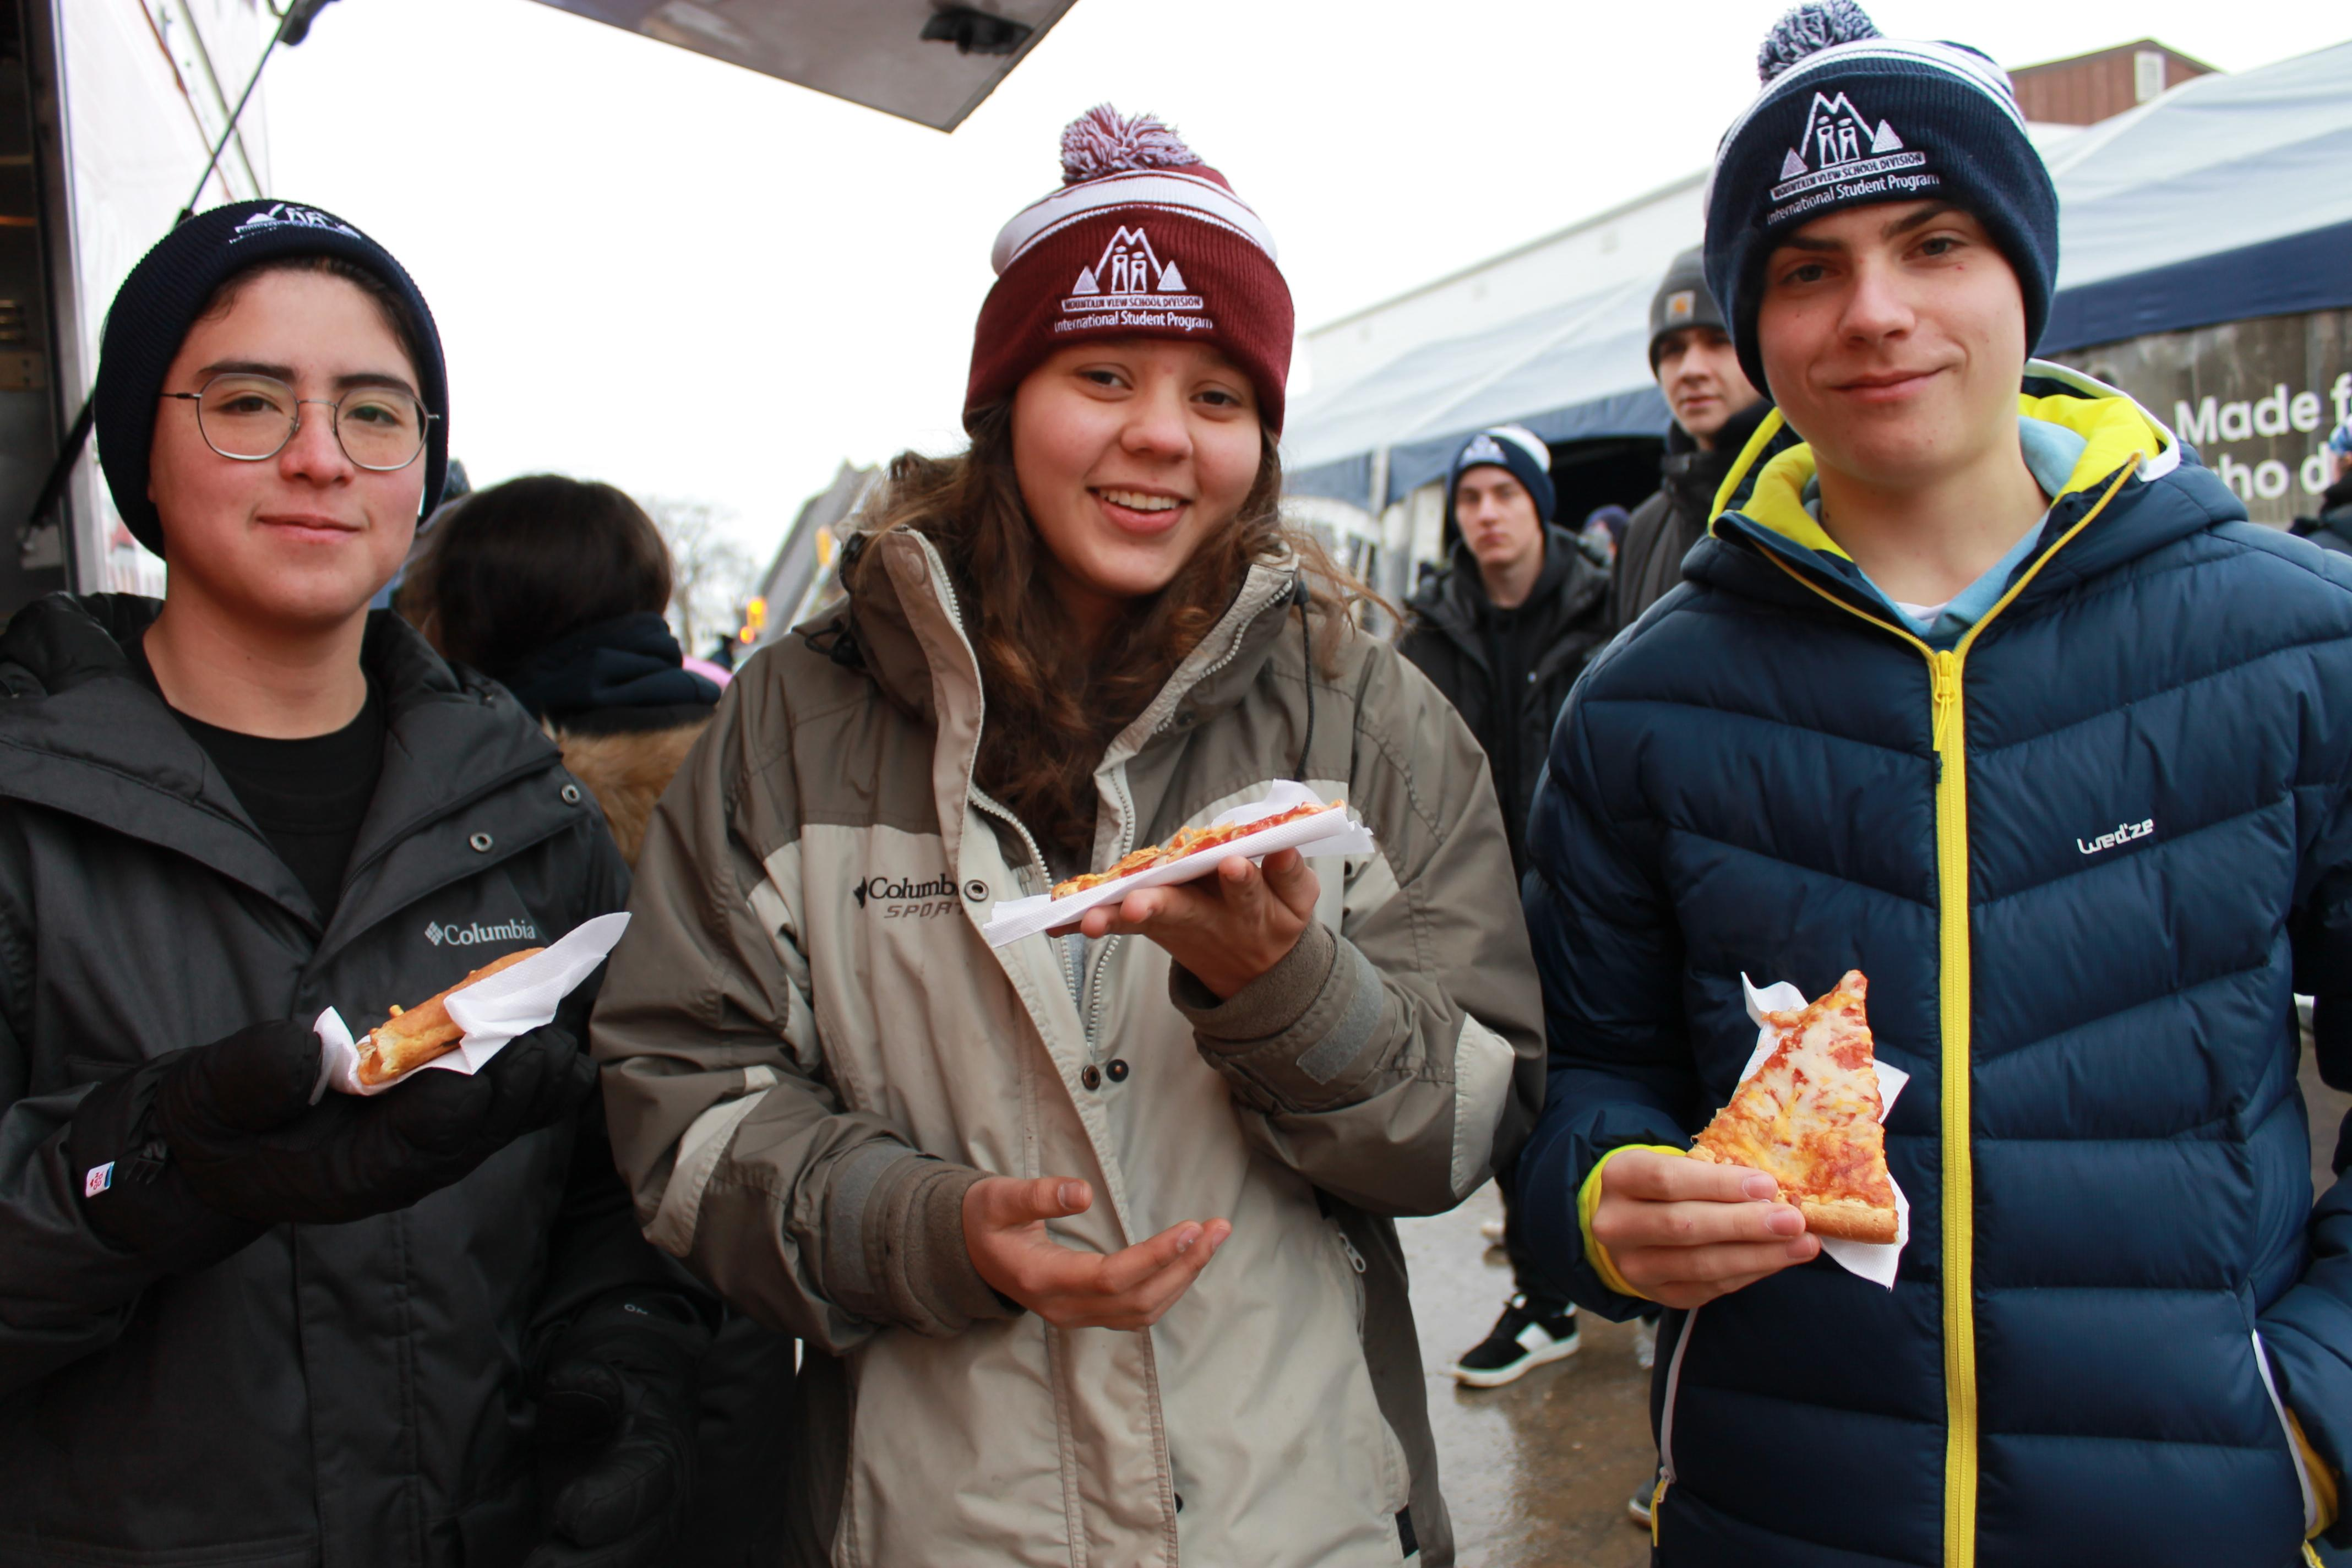 students enjoying free pizza